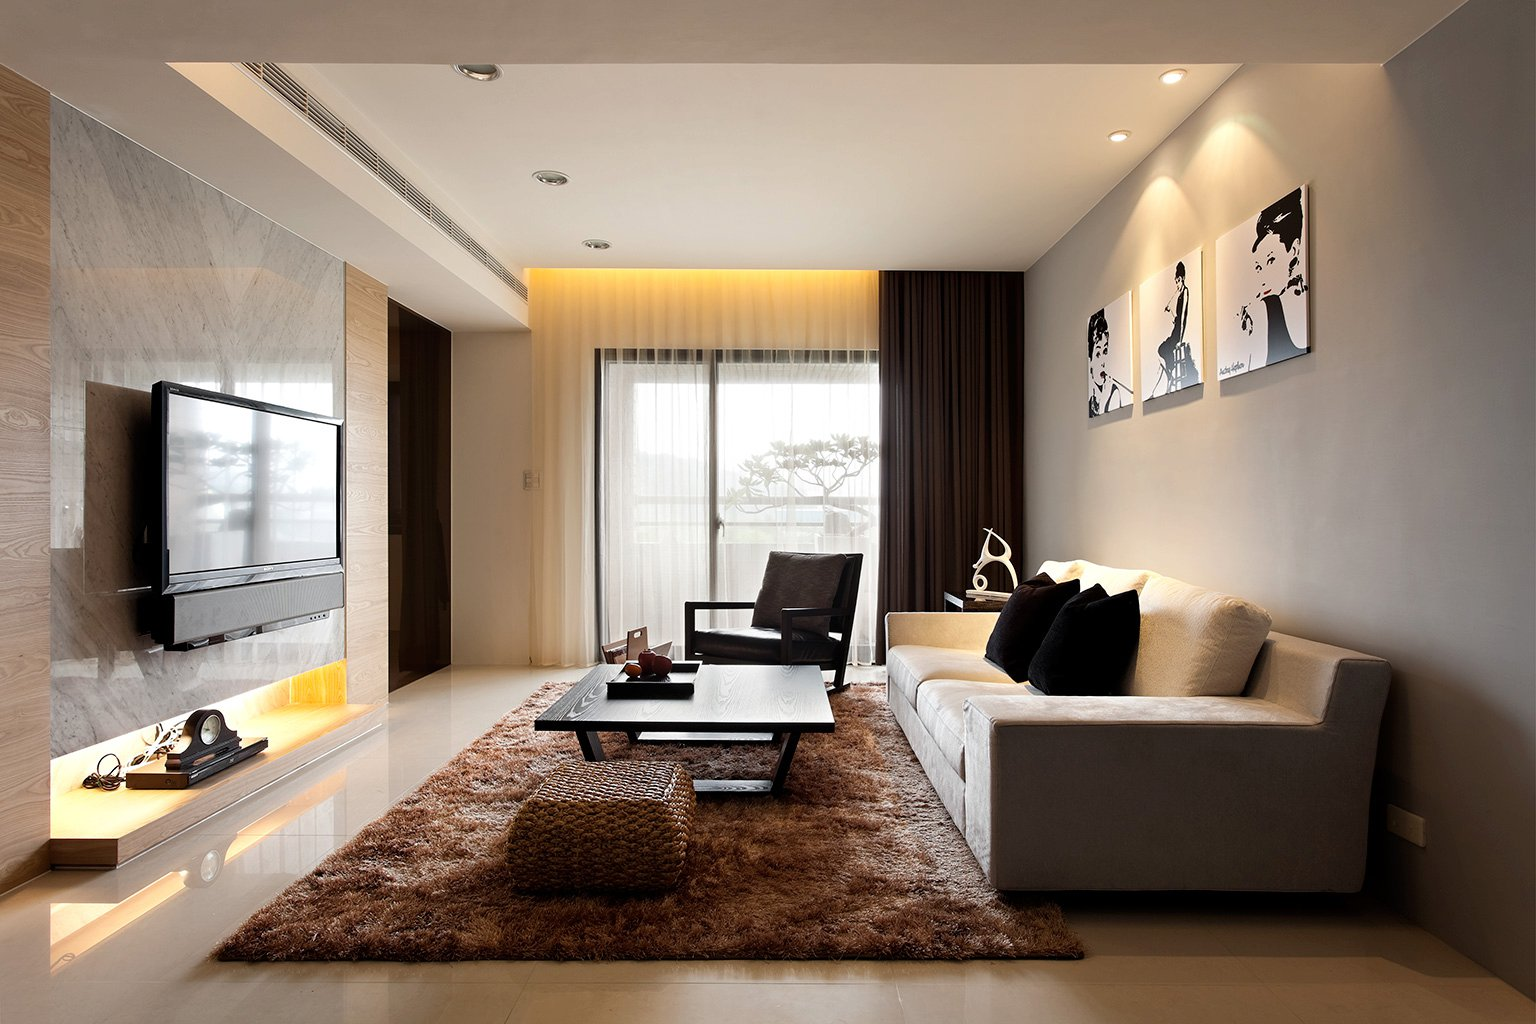 Impressive Modern Living Room Decorations 1536 x 1024 · 238 kB · jpeg